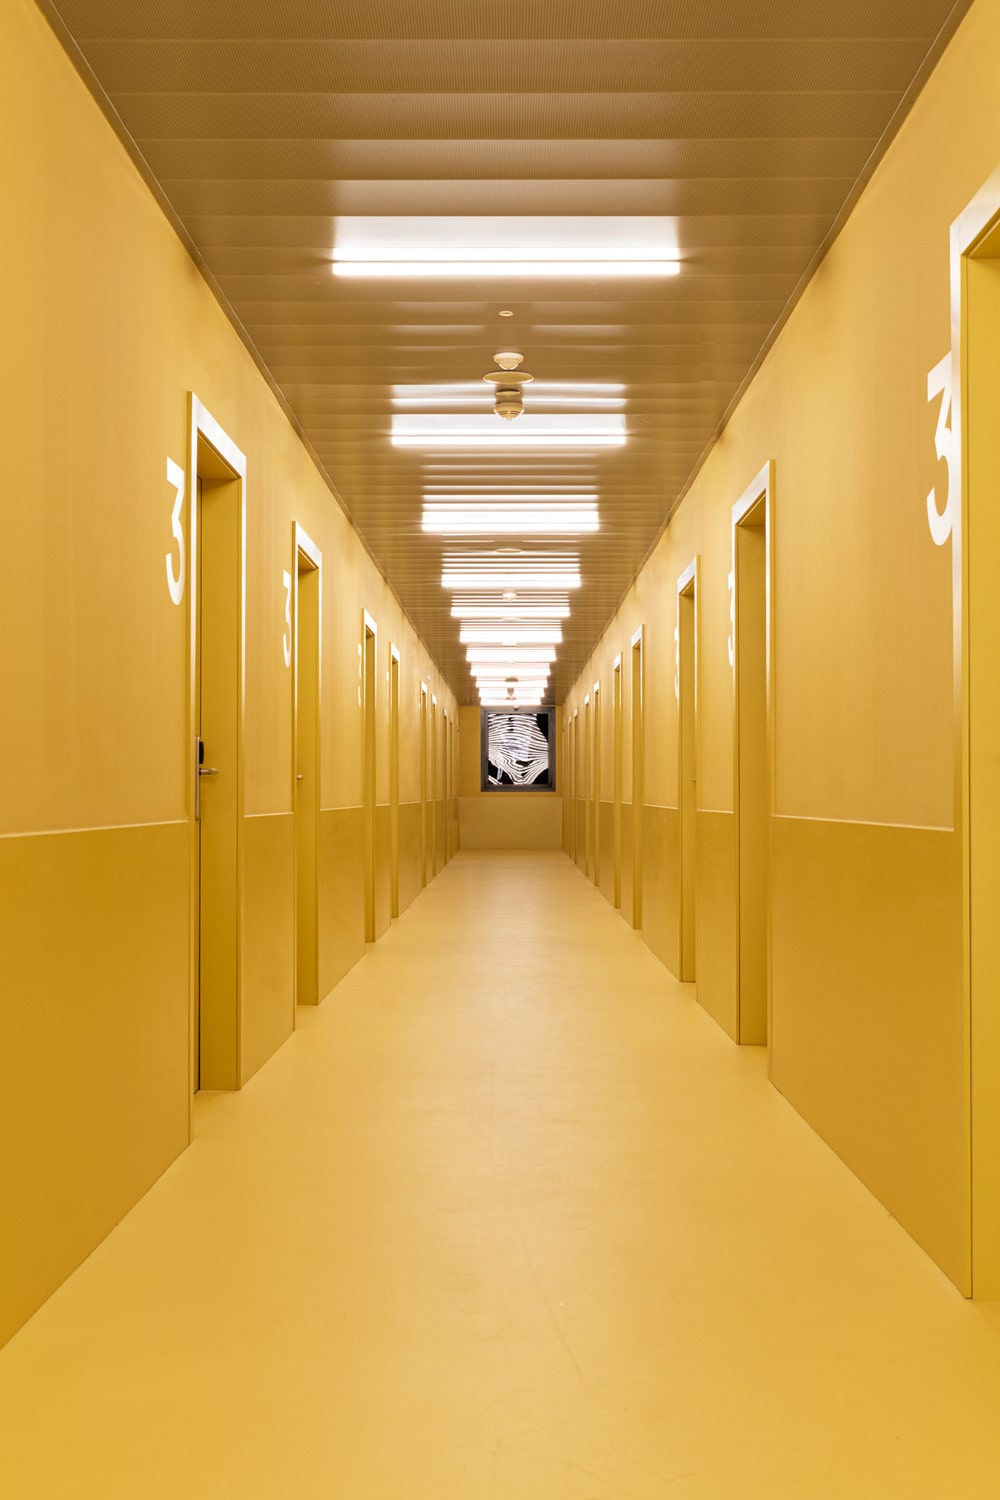 This is hallway inside the residency that has consistent mustard yellow walls, floor and ceiling.